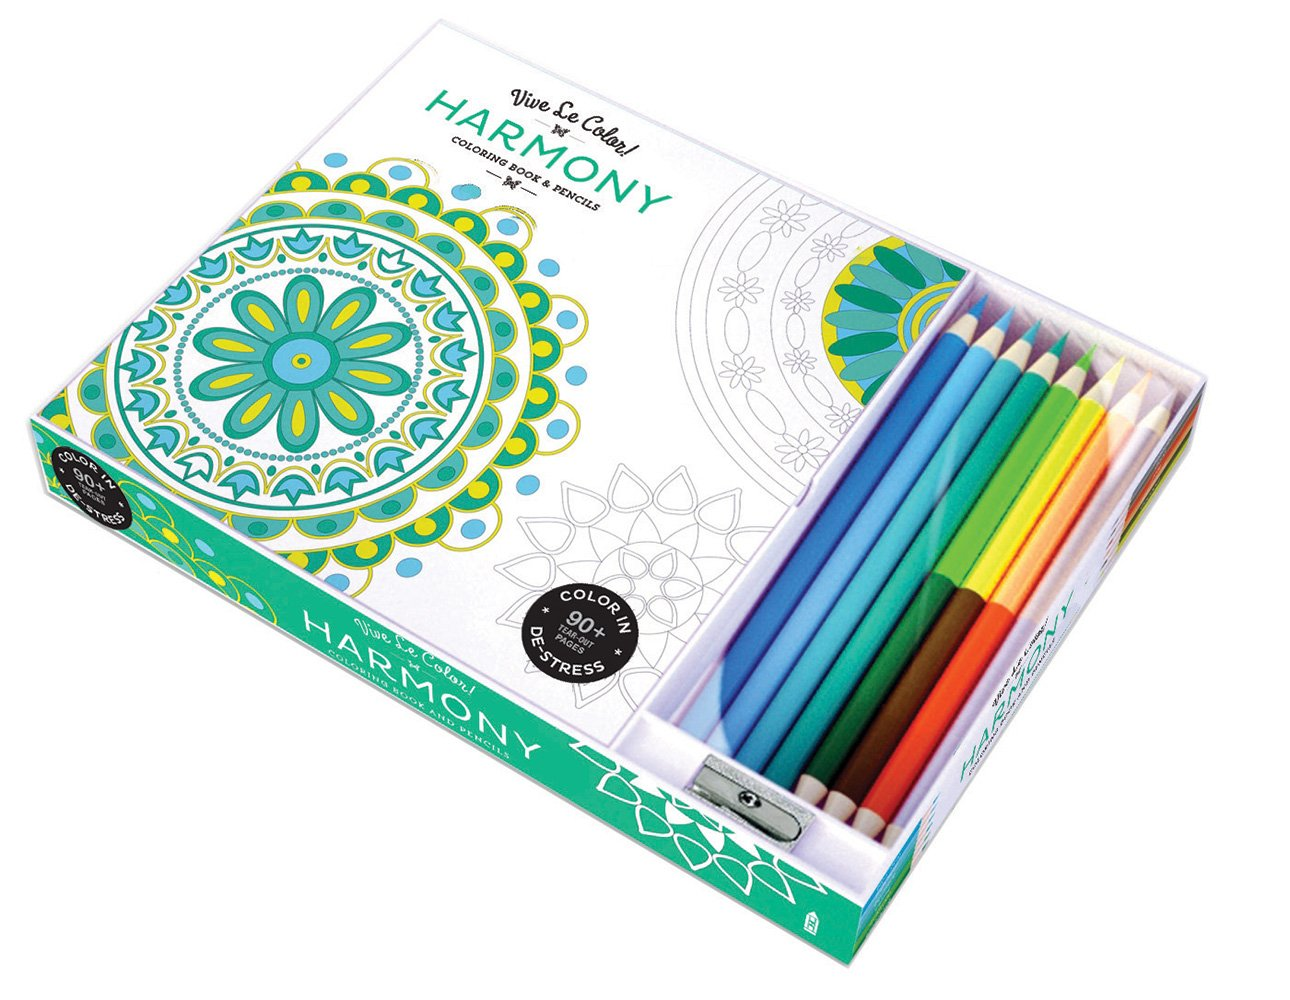 Vive Le Color! Harmony (adult Coloring Book And Pencils)  Color